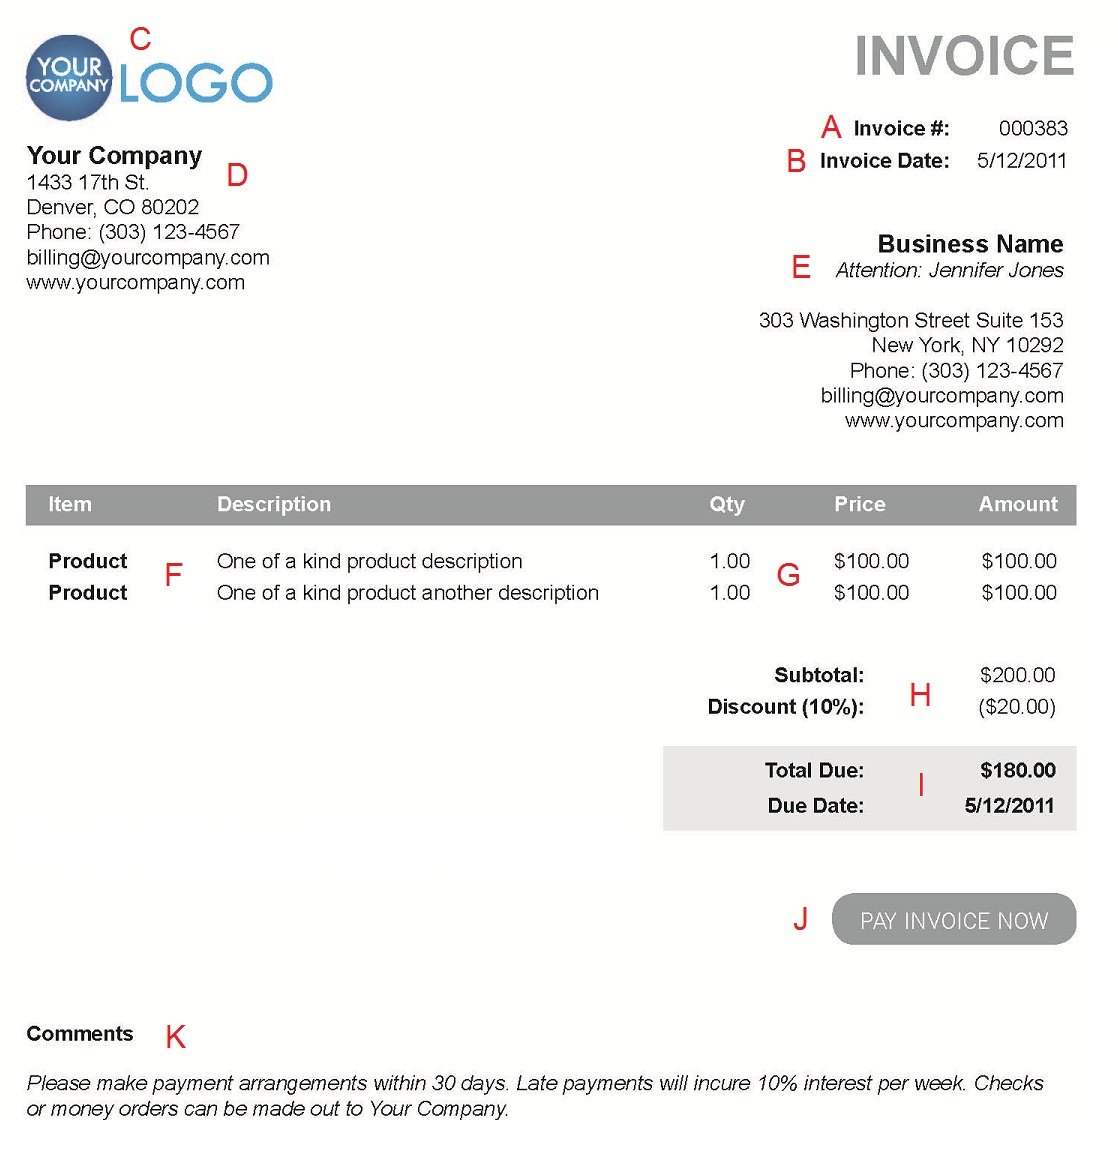 Occupyhistoryus  Unique The  Different Sections Of An Electronic Payment Invoice With Interesting A  With Amusing Services Receipt Template Also Viewtrip E Ticket Receipt In Addition How To Write A Deposit Receipt And How To Organise Receipts As Well As What Is Sales Receipt Additionally Cash Sale Receipt Template Word From Paysimplecom With Occupyhistoryus  Interesting The  Different Sections Of An Electronic Payment Invoice With Amusing A  And Unique Services Receipt Template Also Viewtrip E Ticket Receipt In Addition How To Write A Deposit Receipt From Paysimplecom